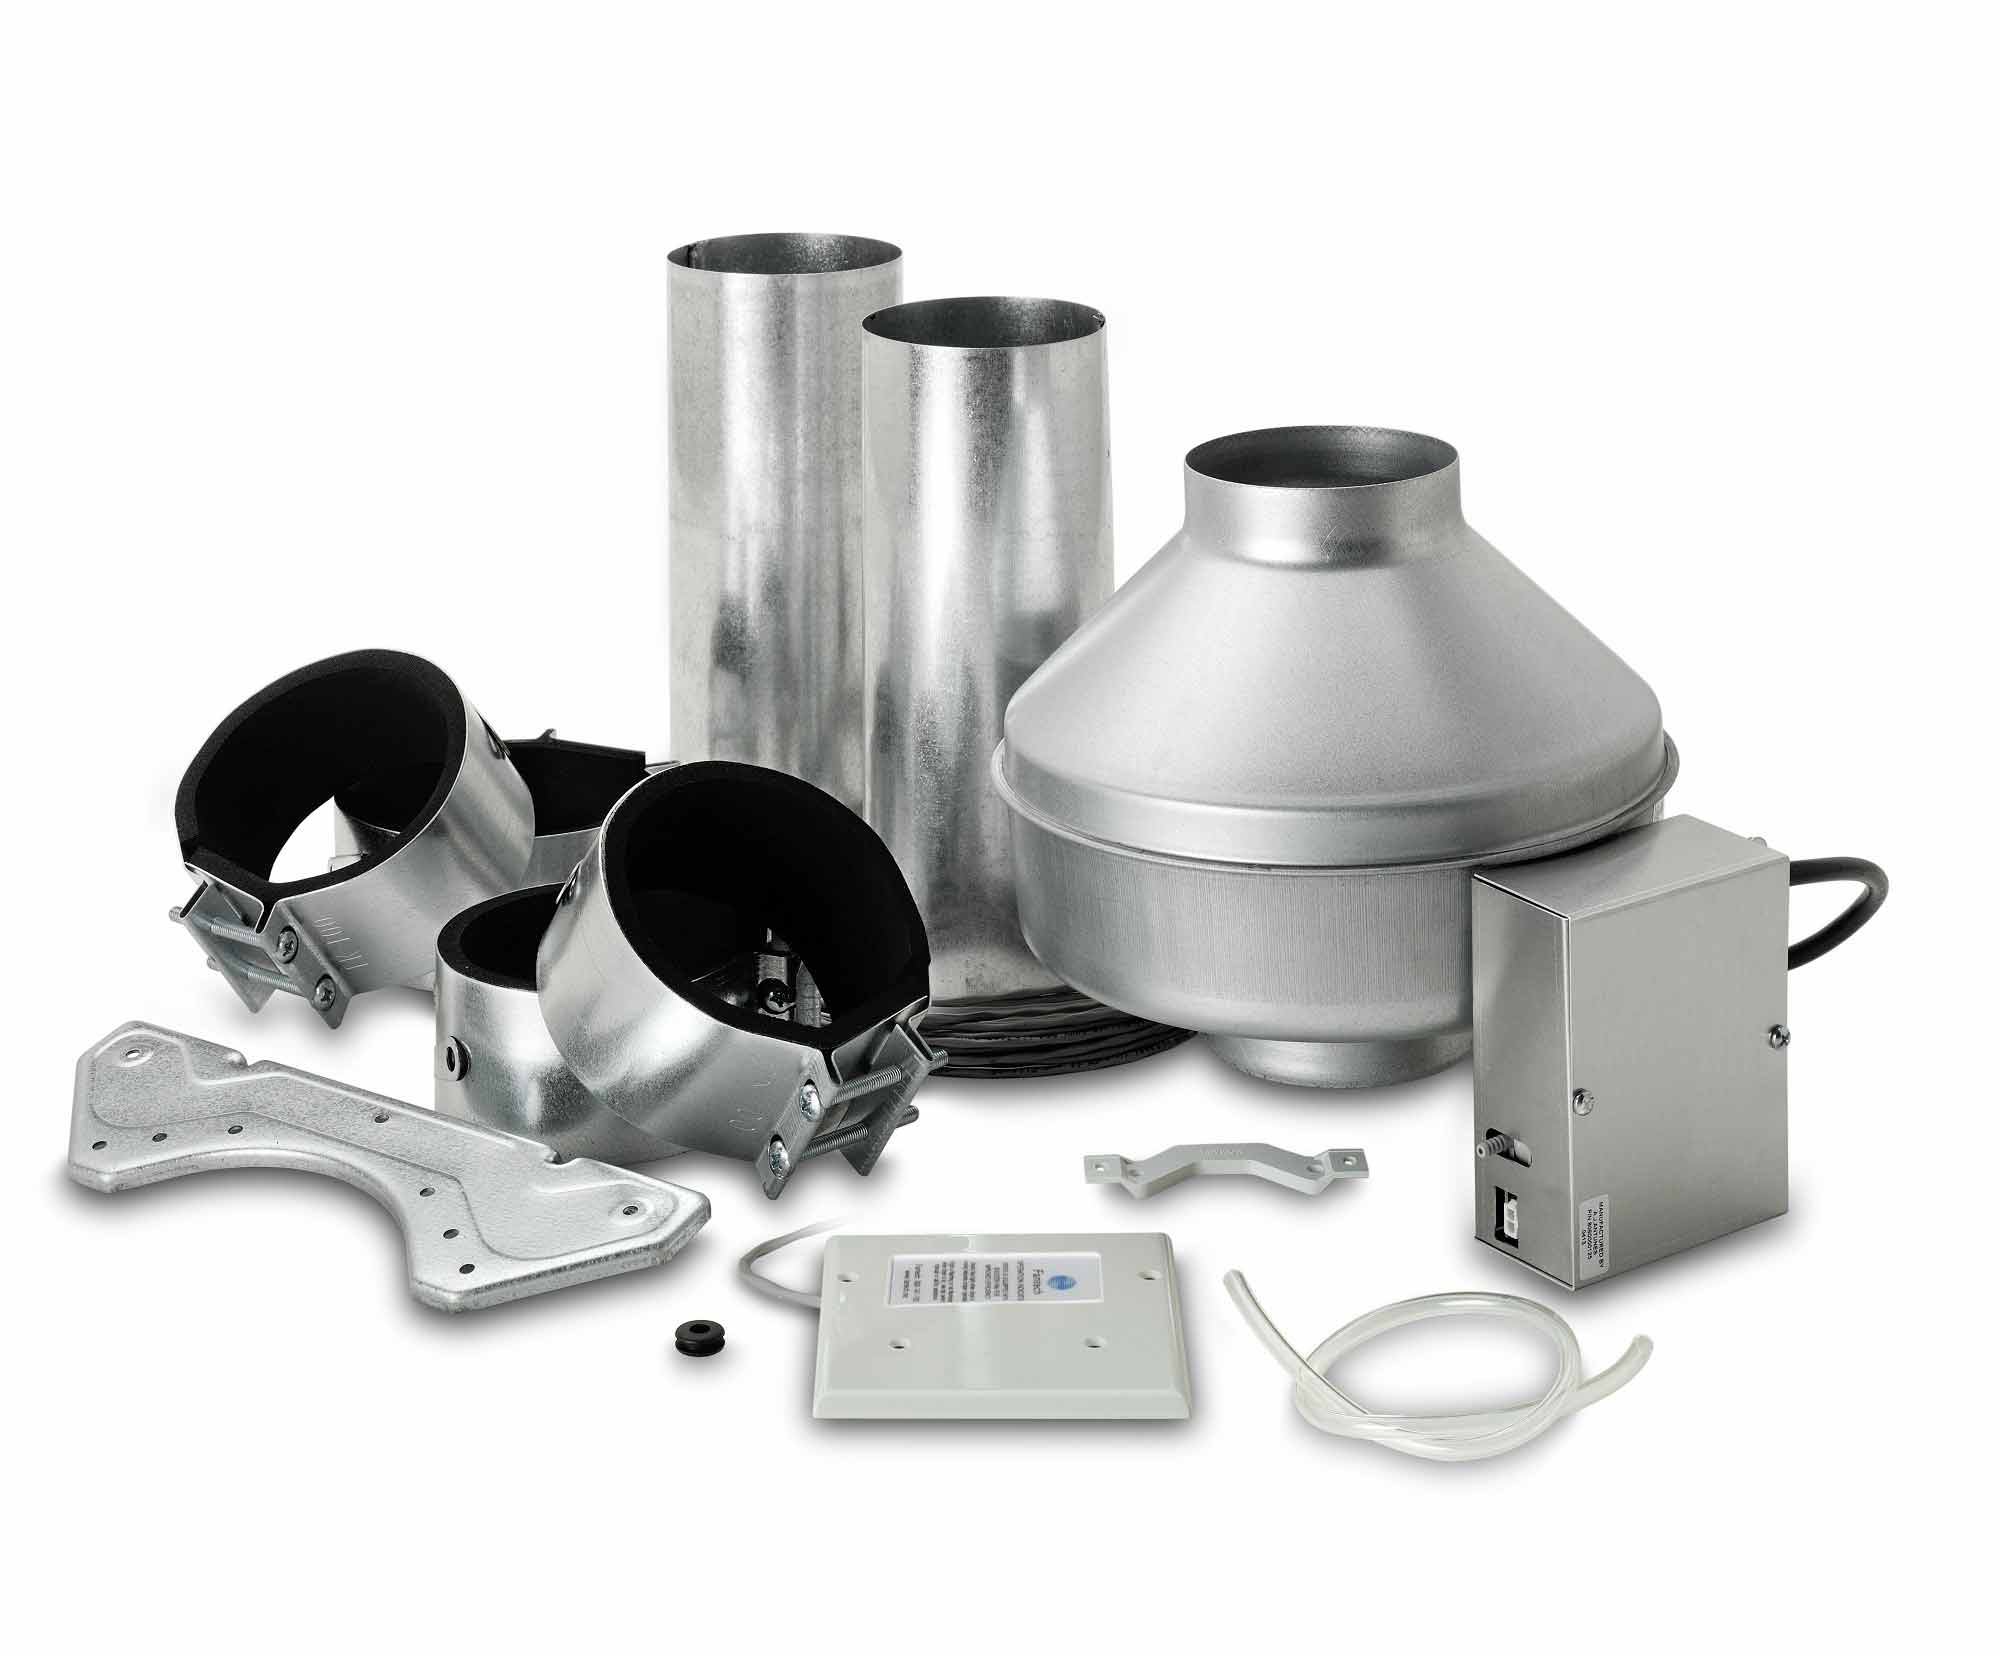 Fantech Designed for exhaust and supply air ventilation systems in residential accommodation such as apartments and homes. Suitable for exhausting air from toilets, bathrooms and low pressure kitchen systems. www.fantech.net